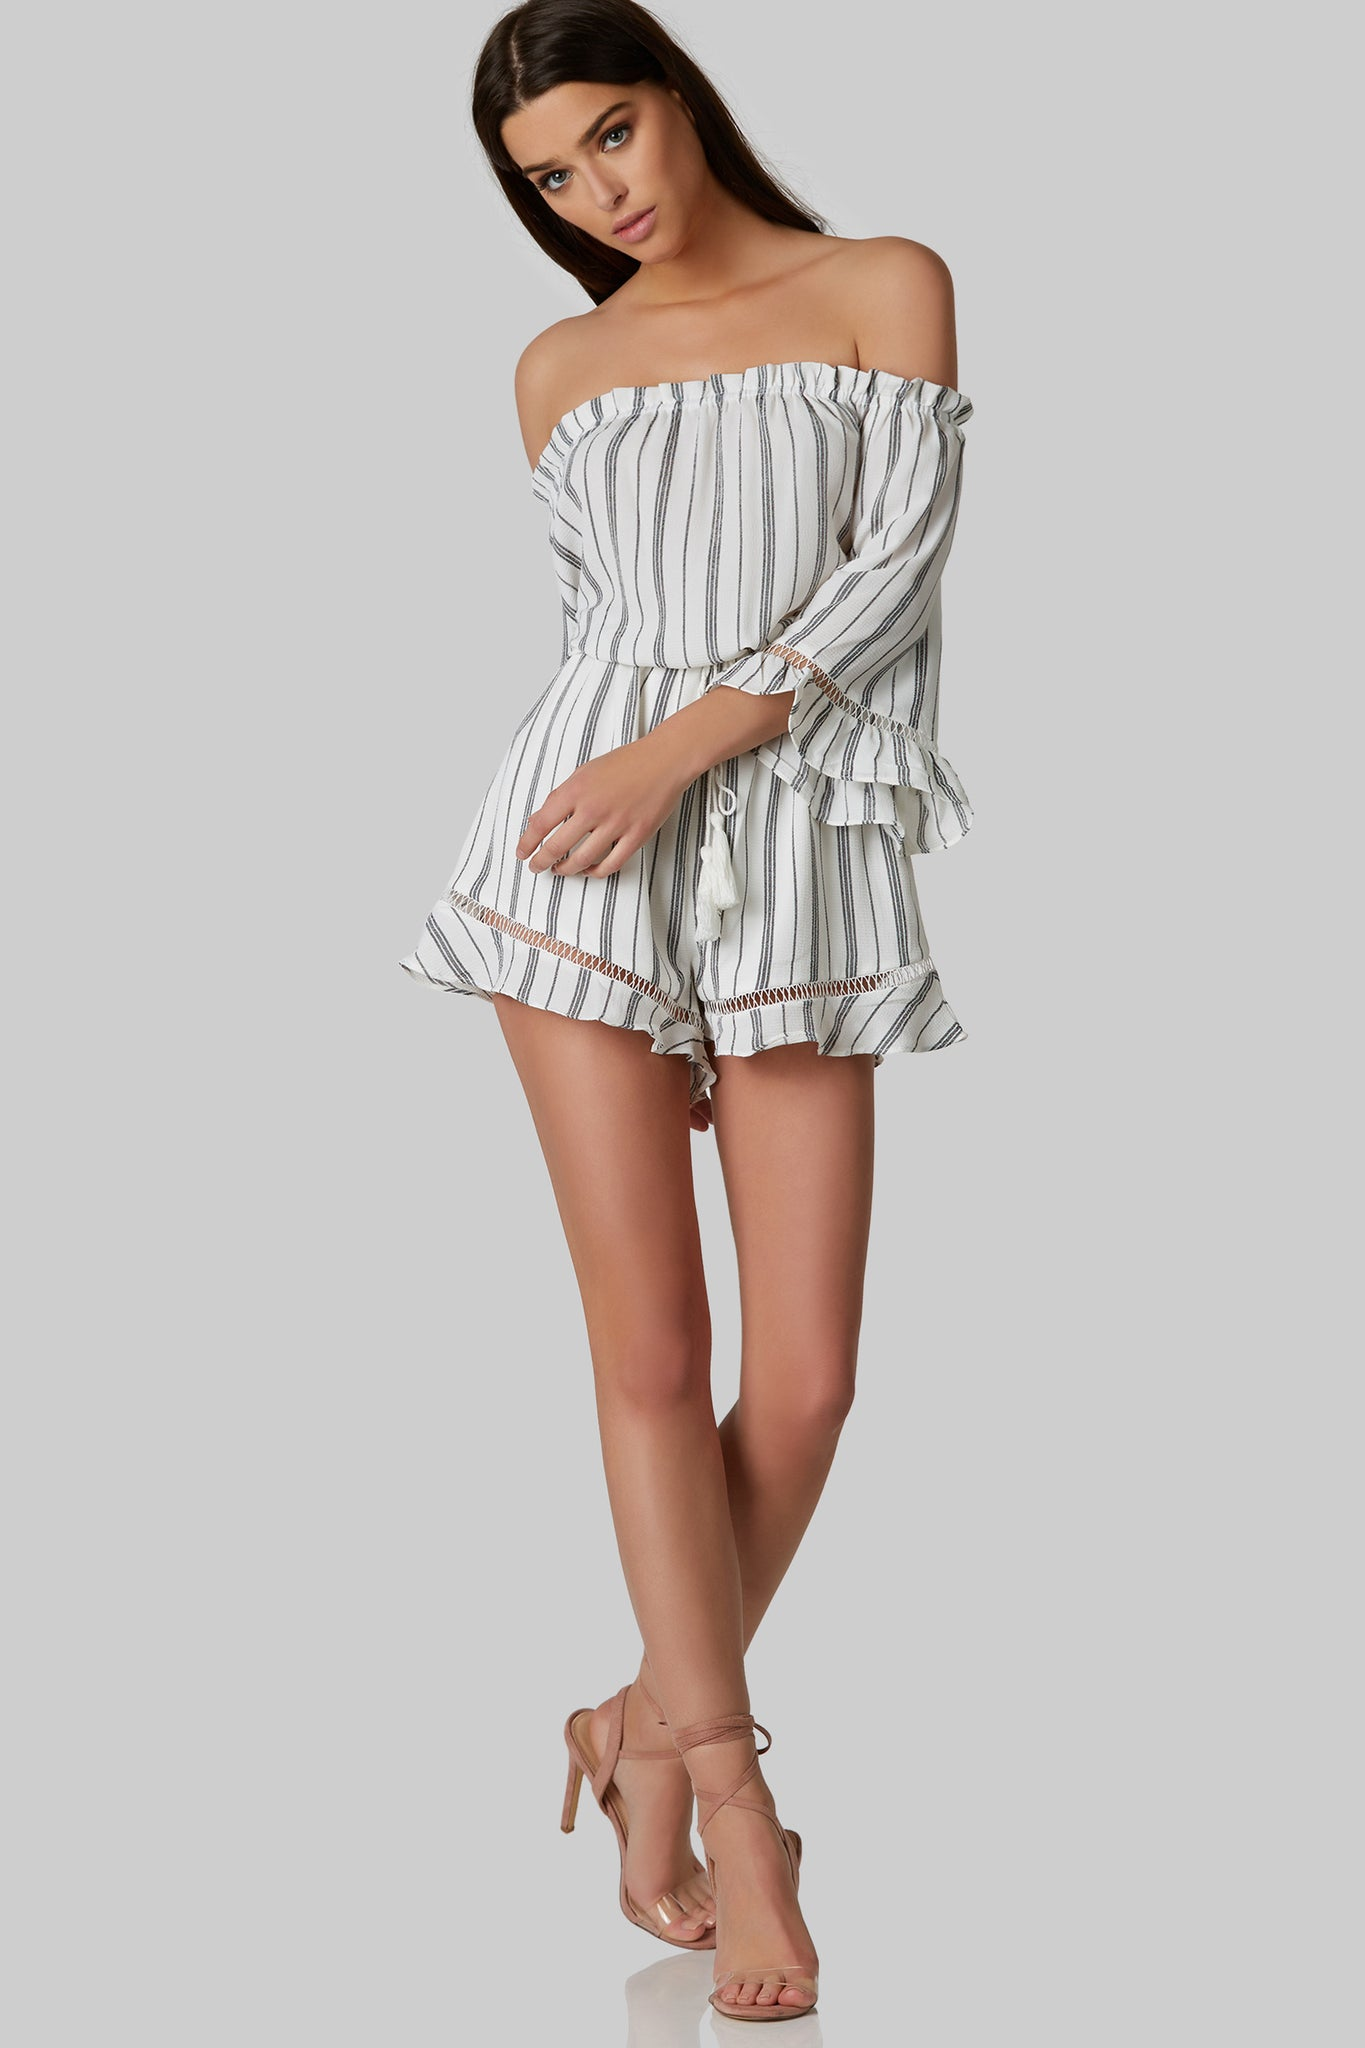 Lightweight stripped romper with cold shoulder. Flowy fit with elastic bands for comfort and fit. Tassel tie around waist with ruffle and intricate lace detailing on long sleeves.